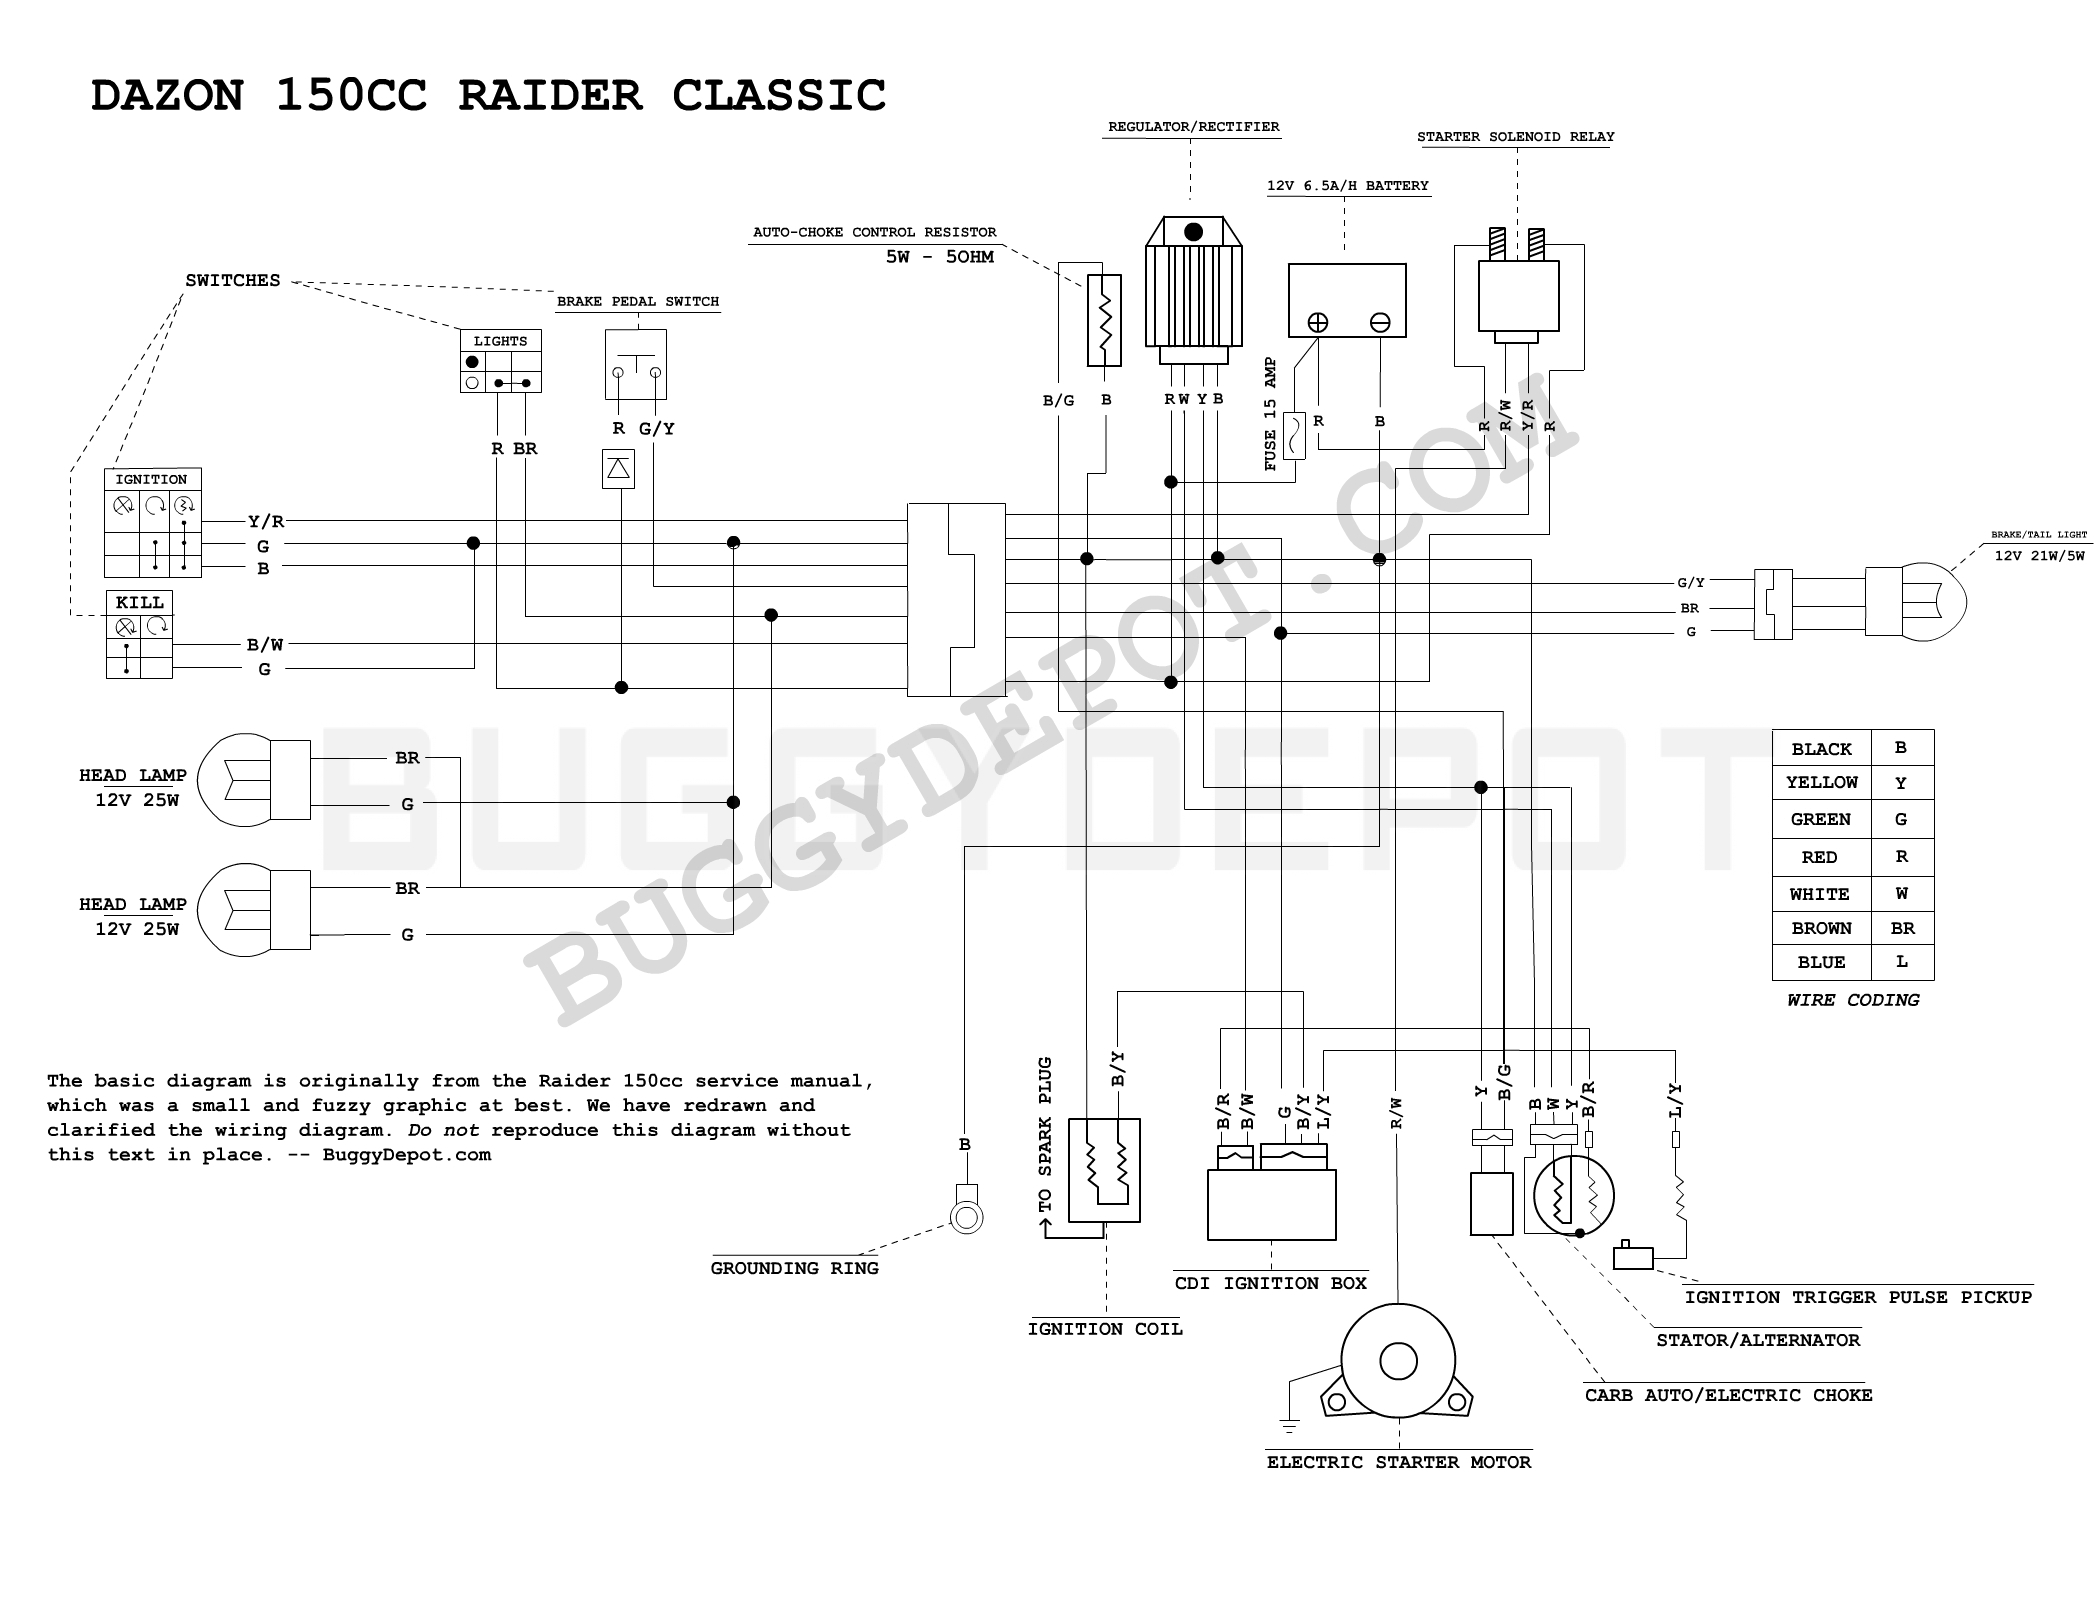 article_33_1278205207 gy6 150cc ignition troubleshooting guide no spark? buggy depot baja dune 150 wiring diagram at edmiracle.co